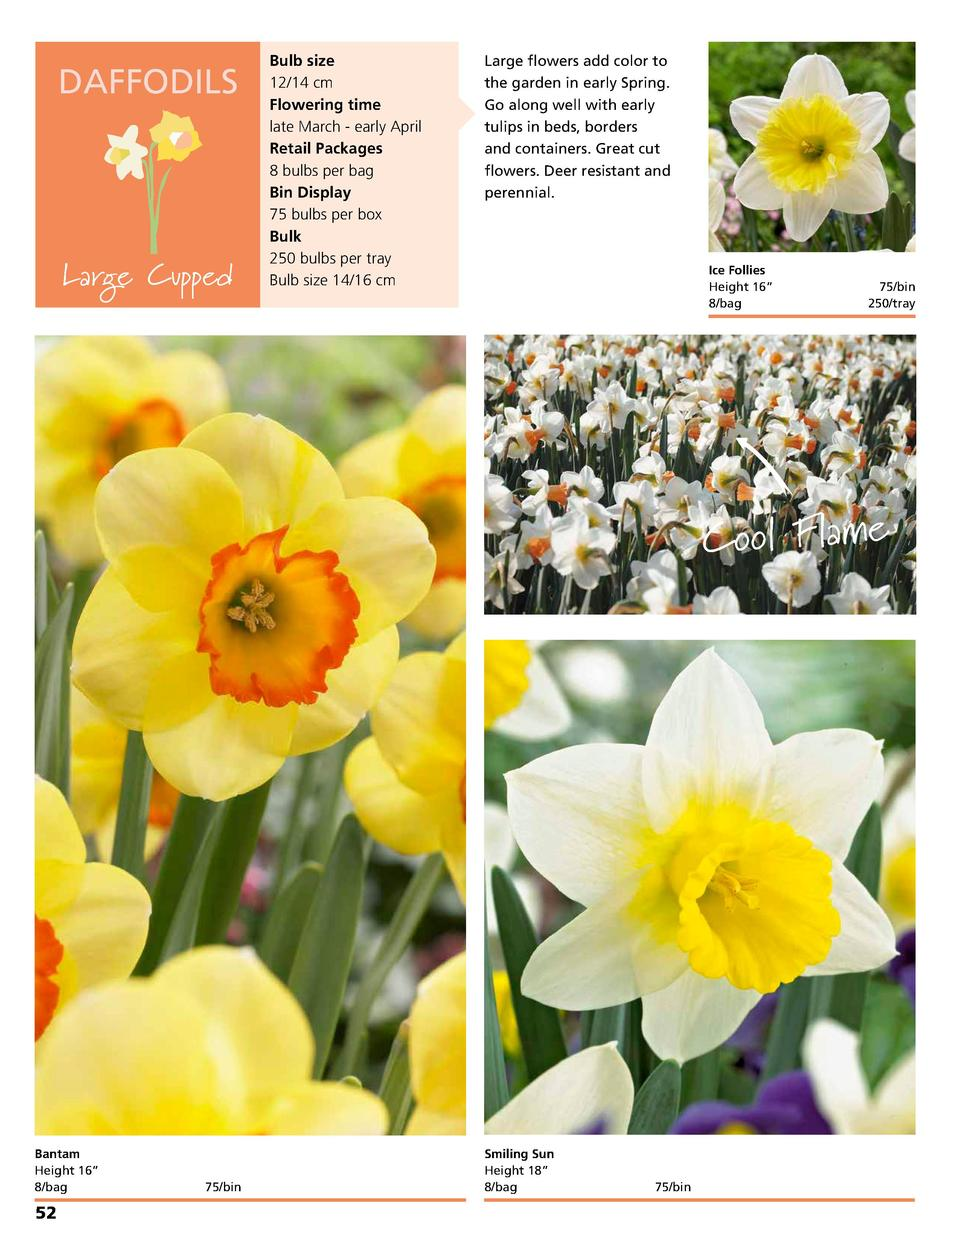 DAFFODILS  Large Cupped  Bulb size 12 14 cm Flowering time late March - early April Retail Packages 8 bulbs per bag Bin Di...